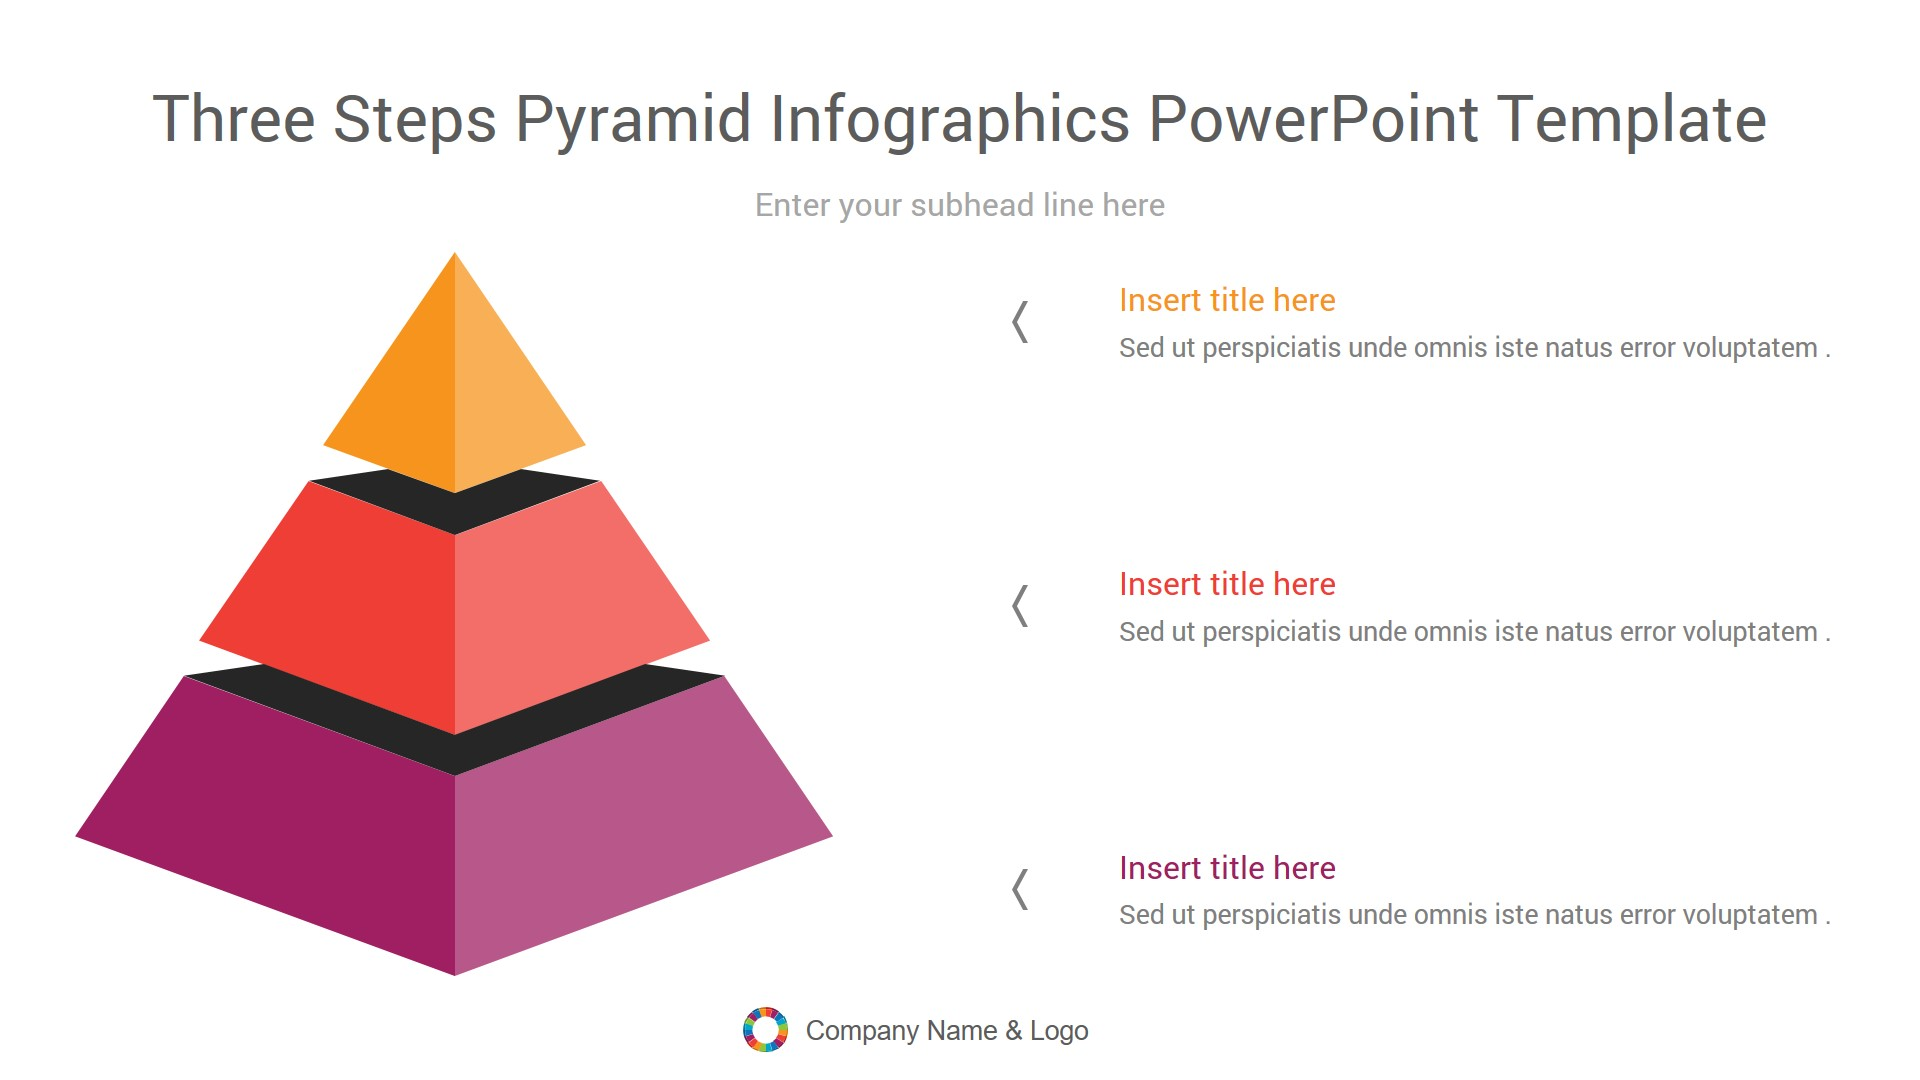 Three Steps Pyramid Infographics PowerPoint Template